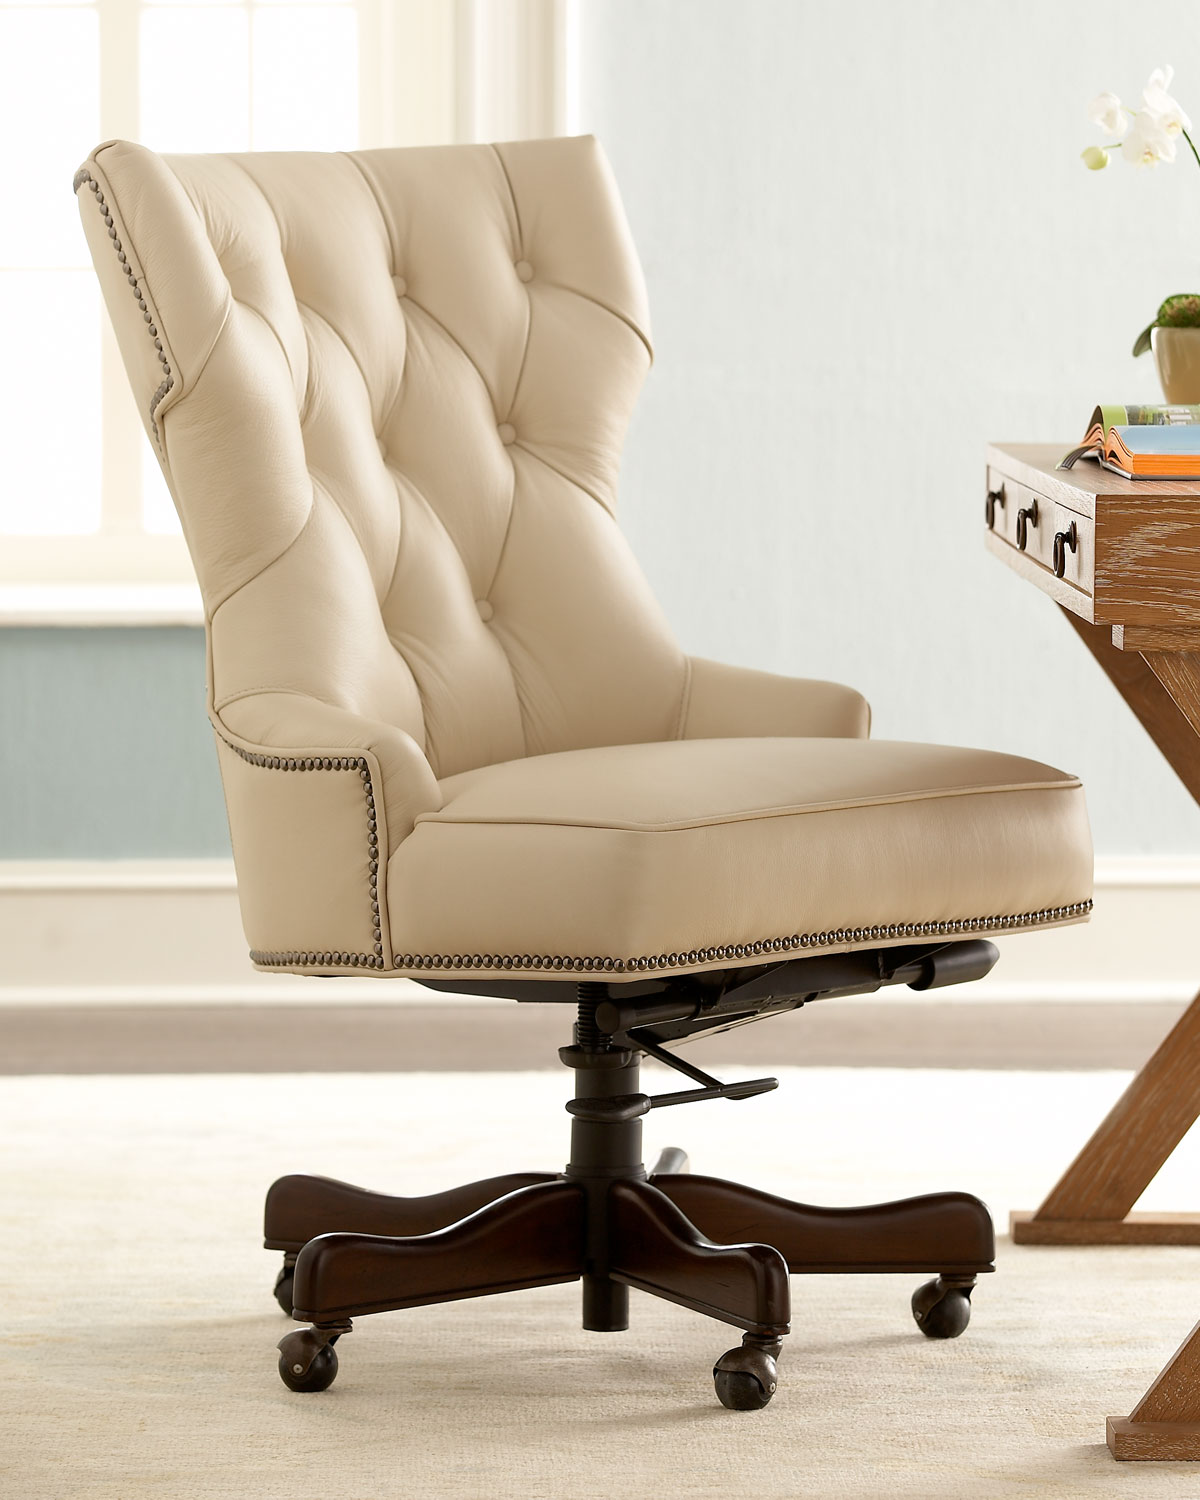 Home Office Desk Chair How To Decorate An Office At Work With Leather Chairs